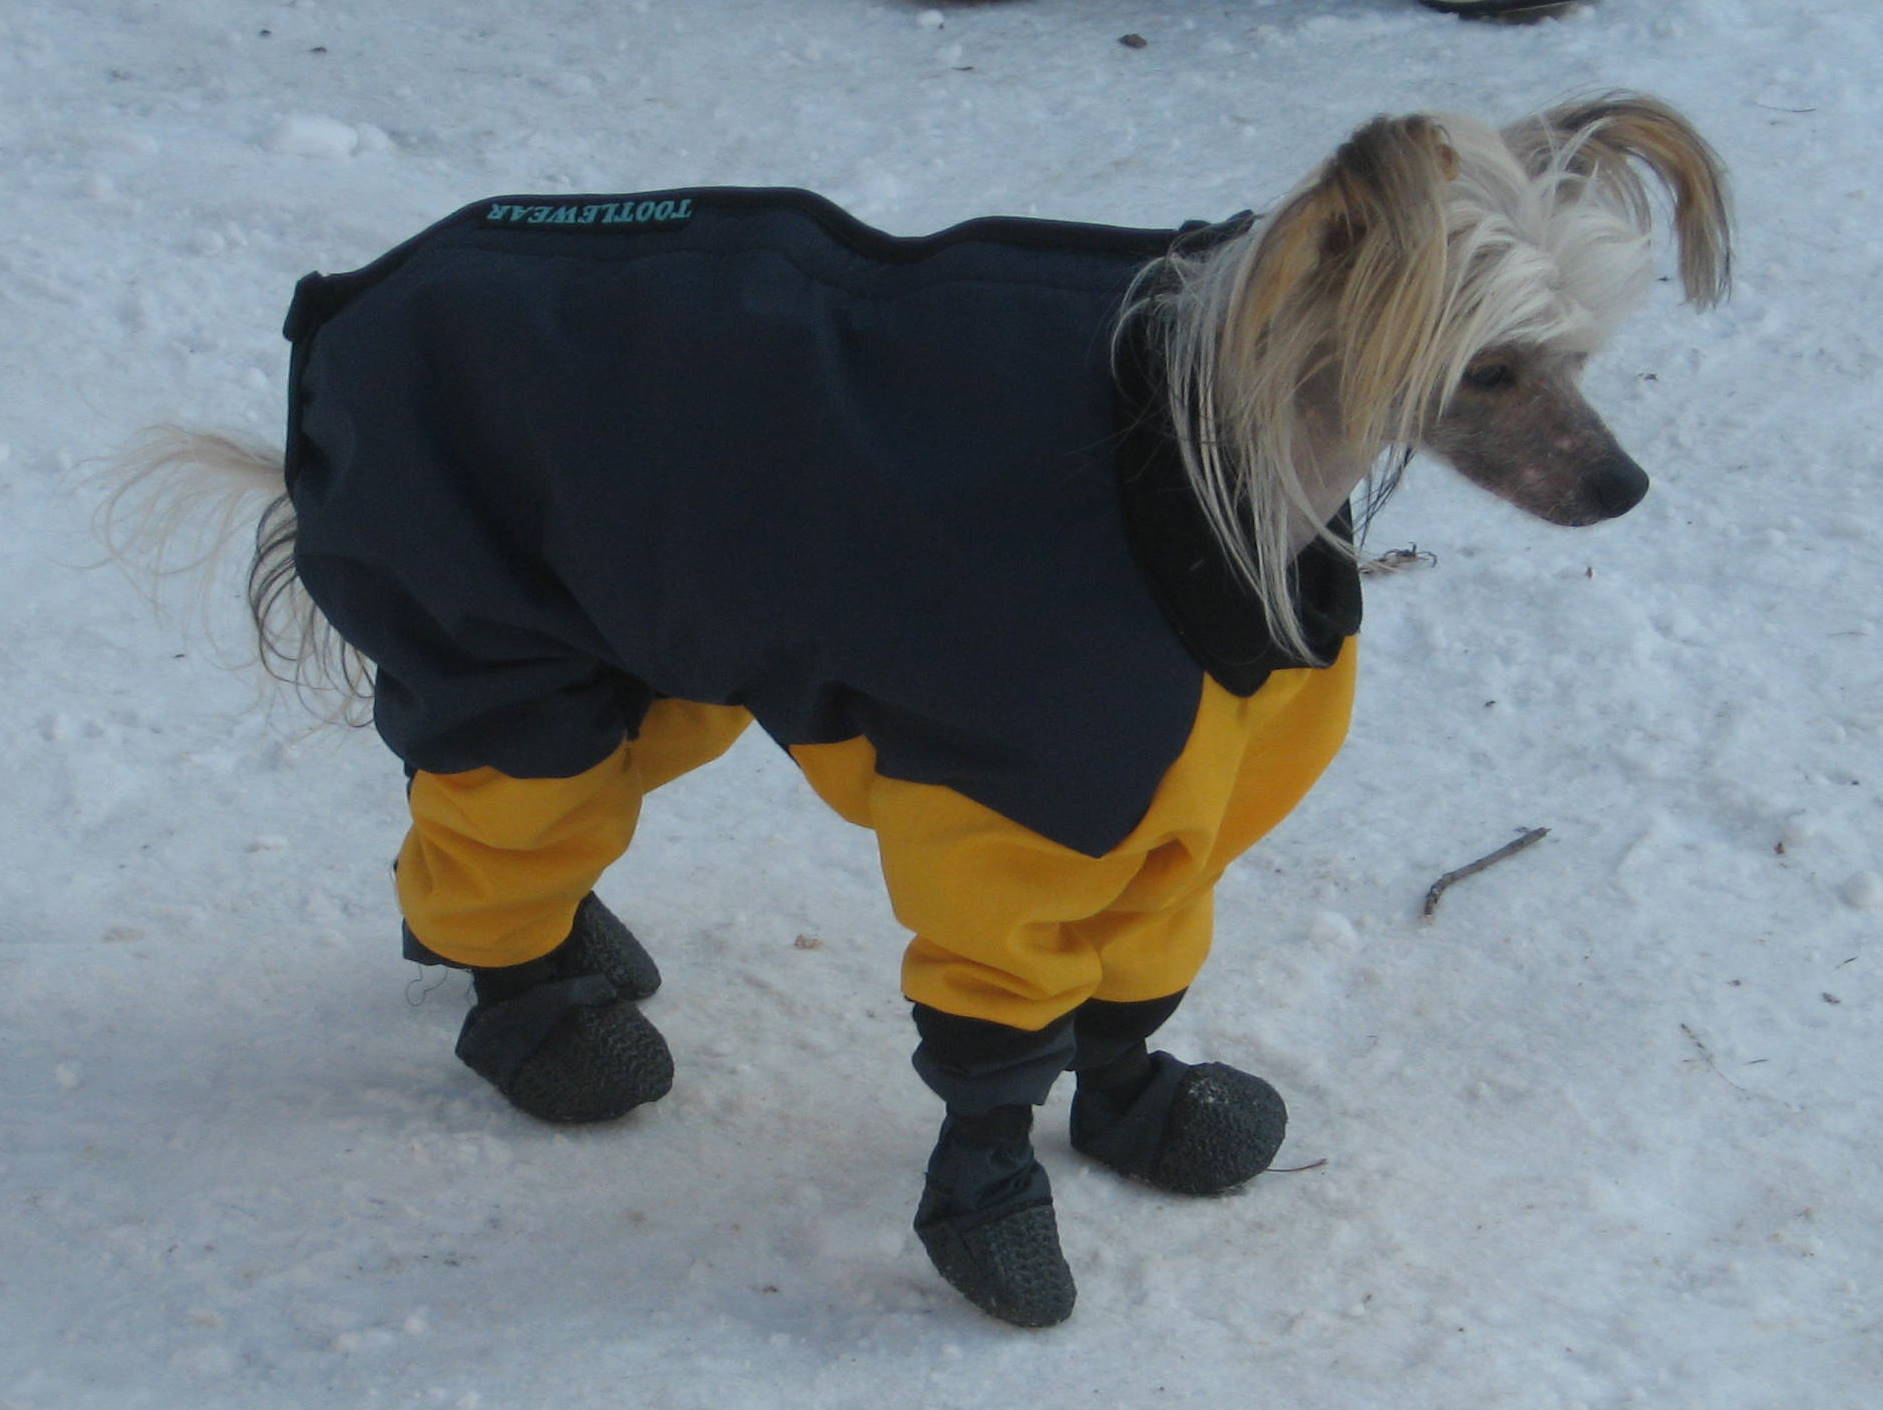 Small Dog Snowsuit photo - 1